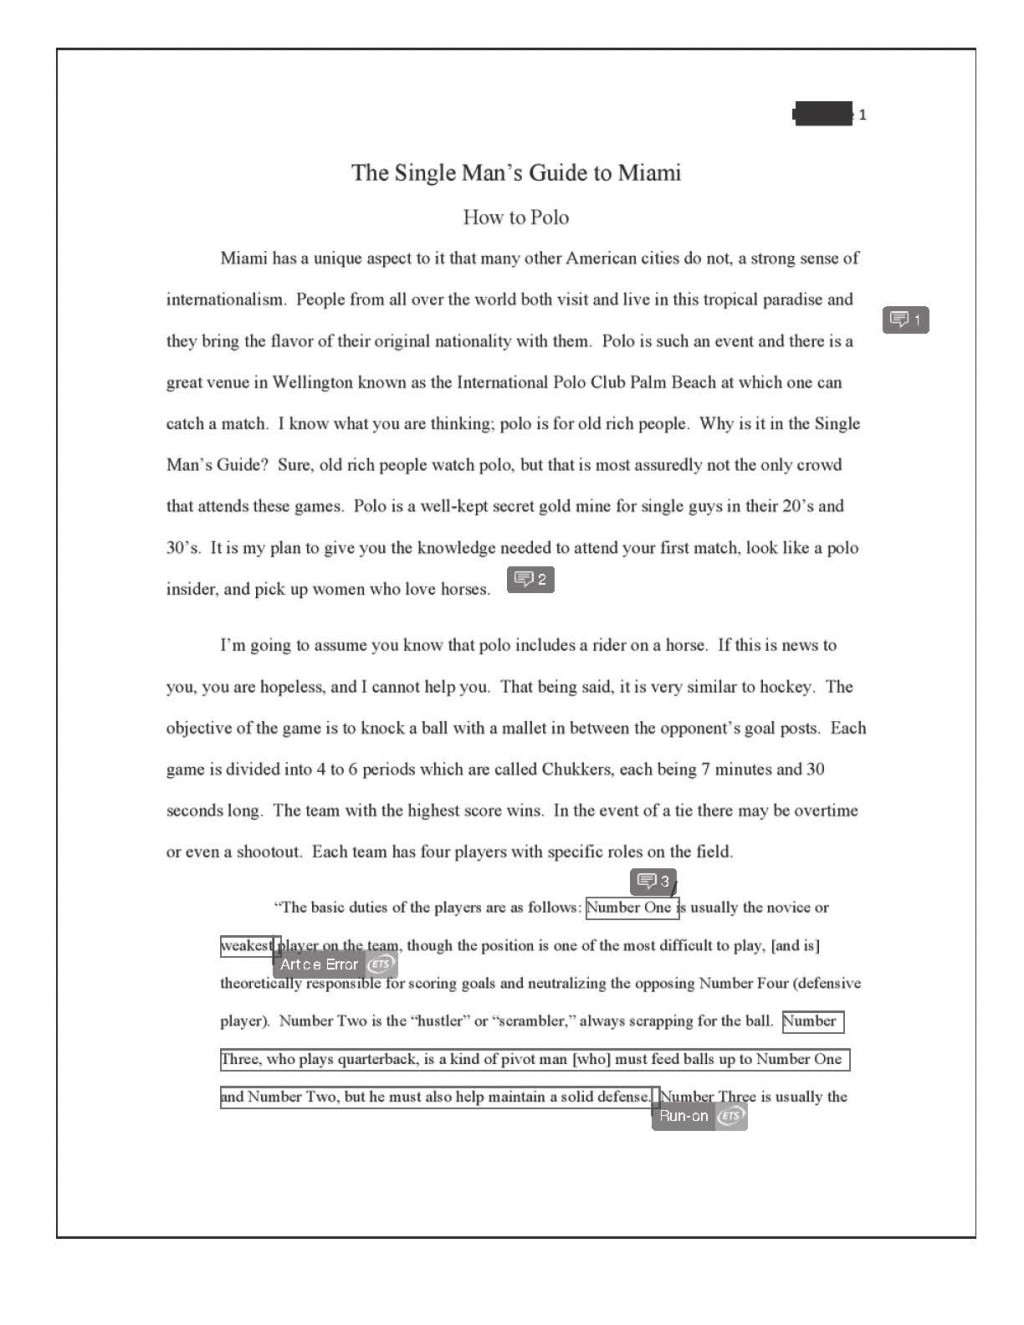 007 Informative Essay Kinds Of Writing Types Essays The Center In Hindi Final How To Polo Redacted P Pdf Task Slideshare Ppt Withs Wikipedia Dreaded Outline Template Topics For 5th Grade Rubric Fsa Large